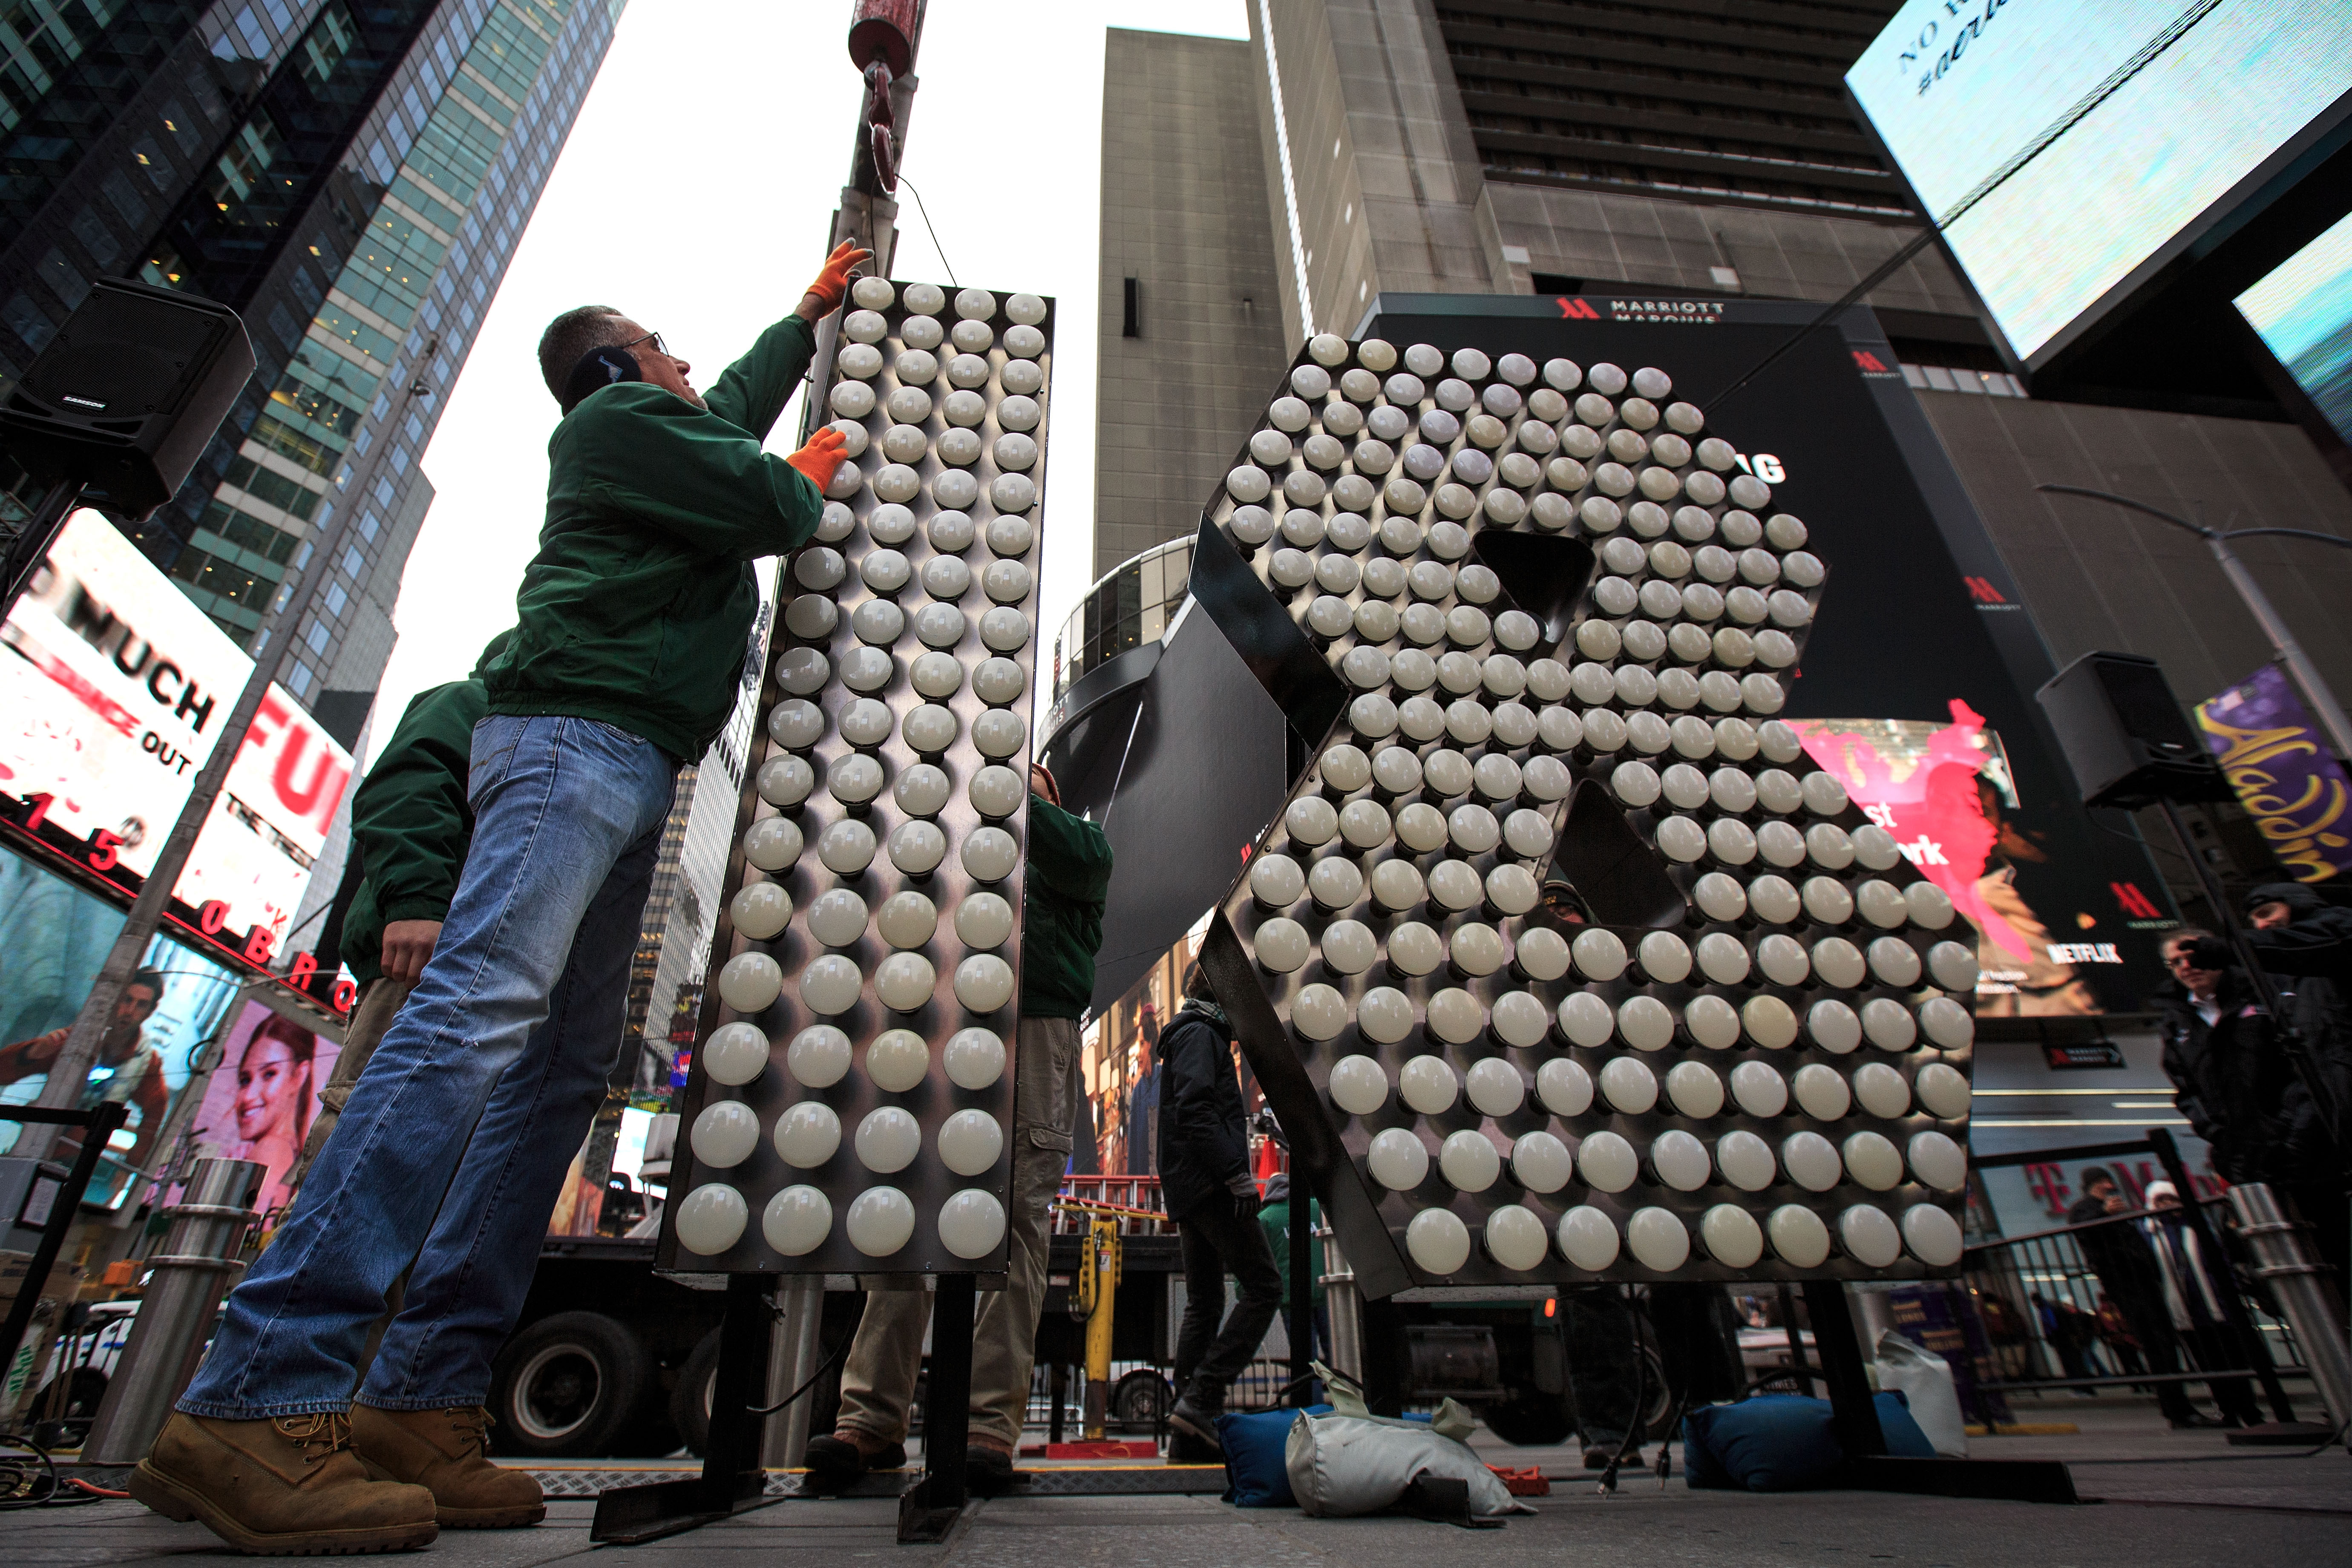 The Numerals For New York City's Annual New Year's Eve Celebration Arrive In Times Square